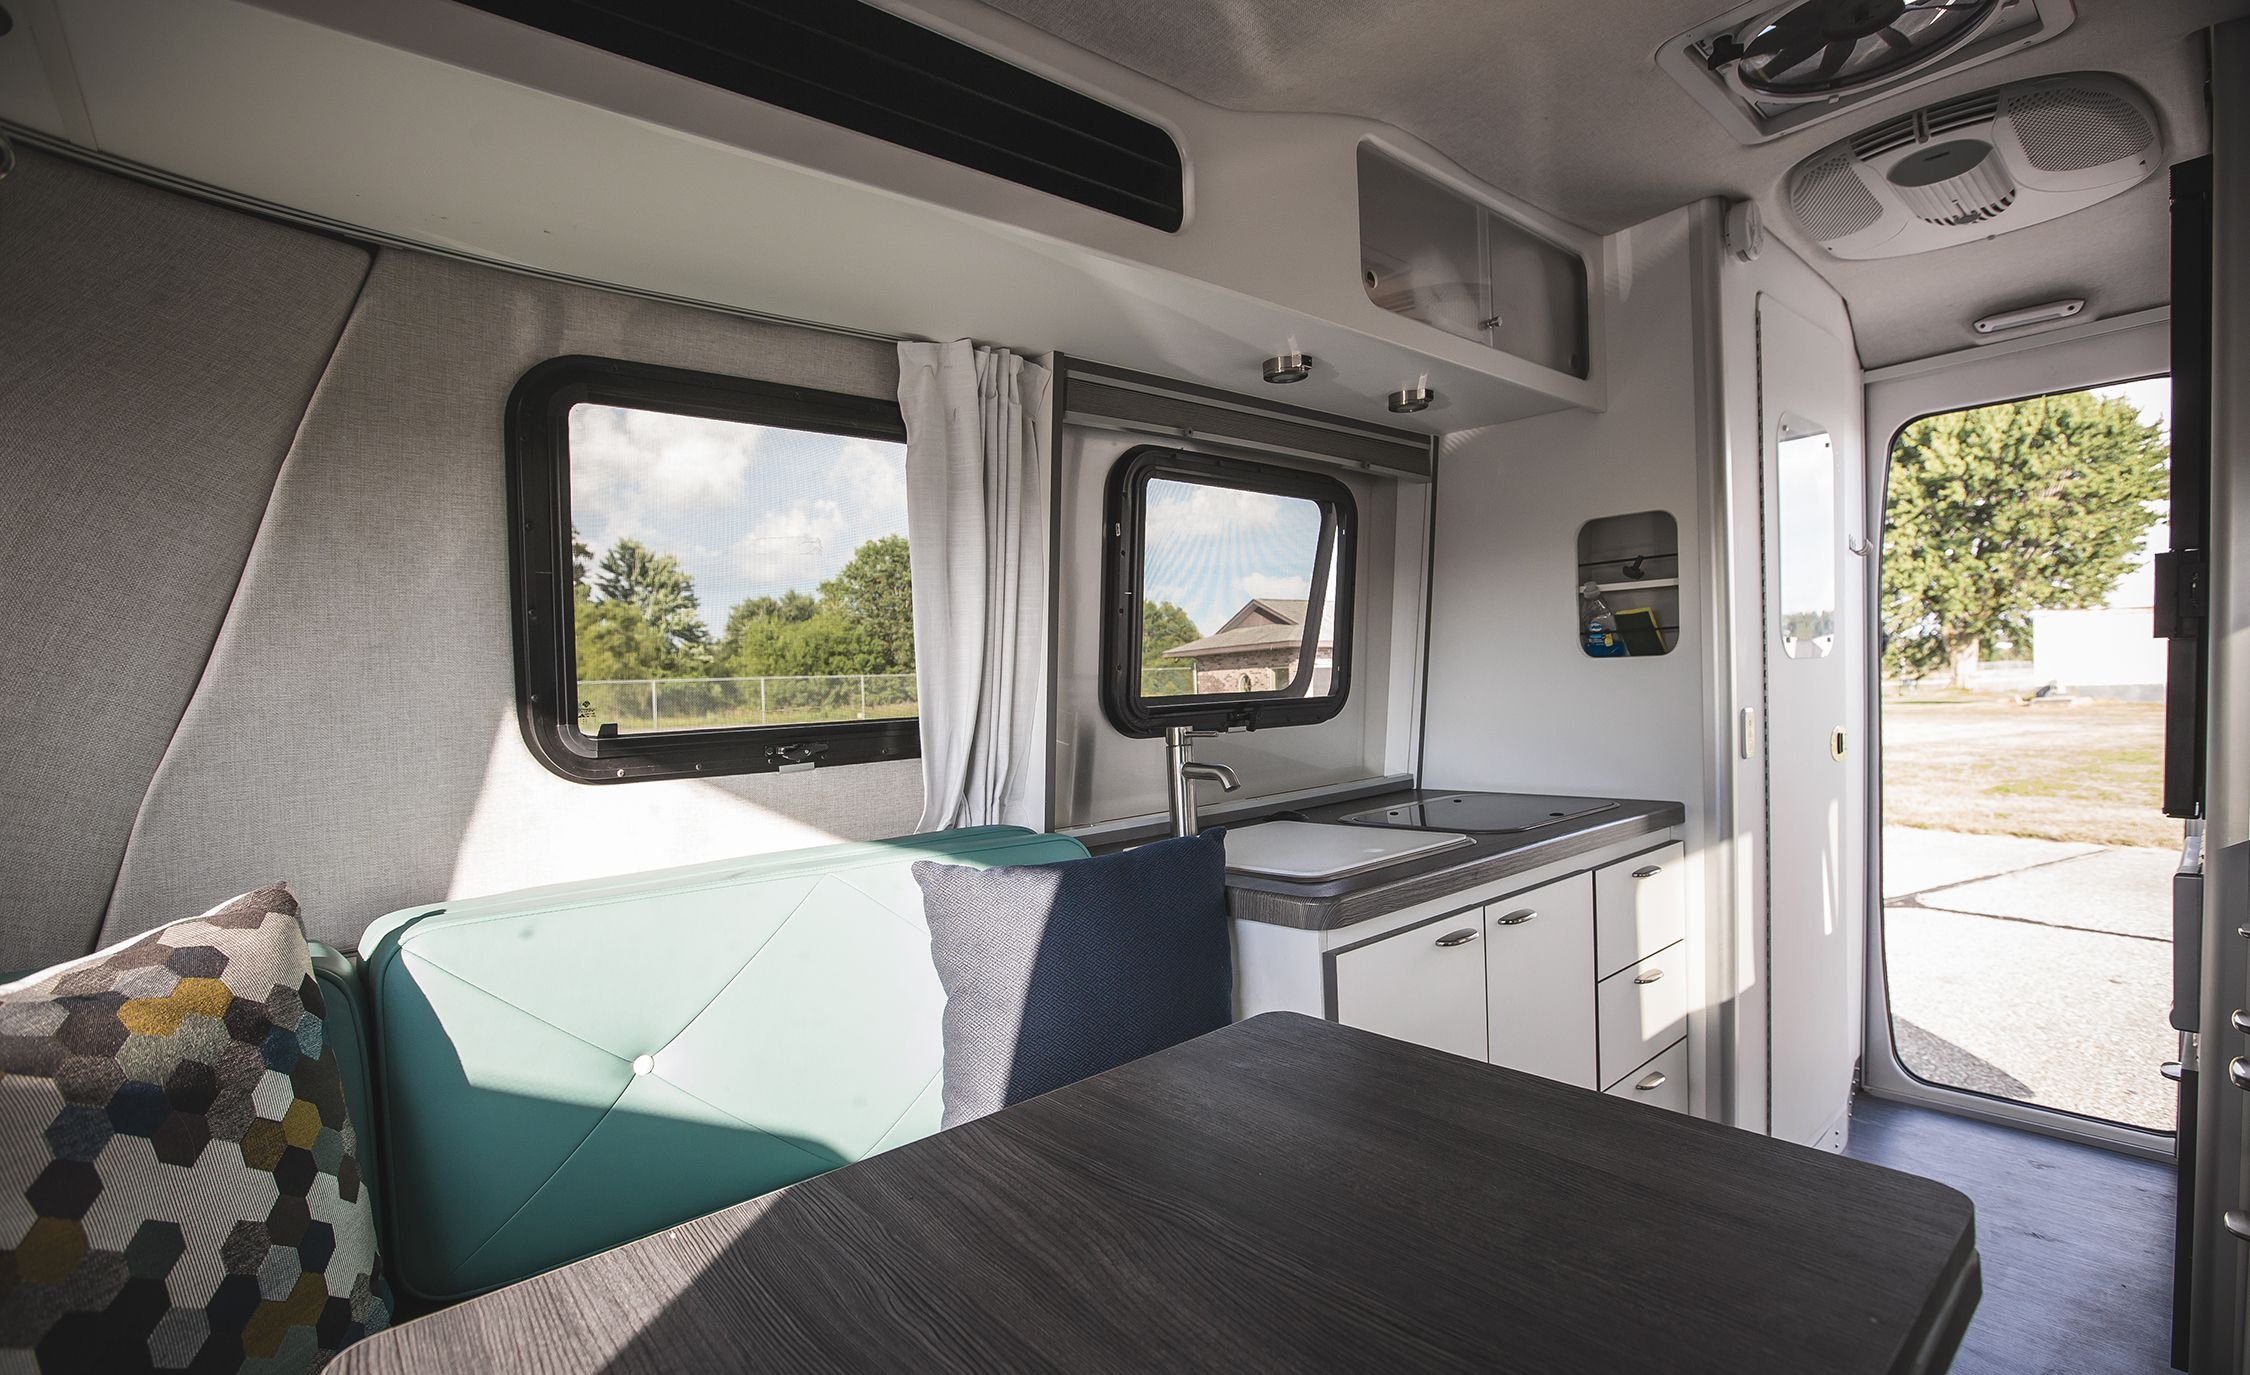 Flipboard: Architectural Digest: If You Like Airstreams ...